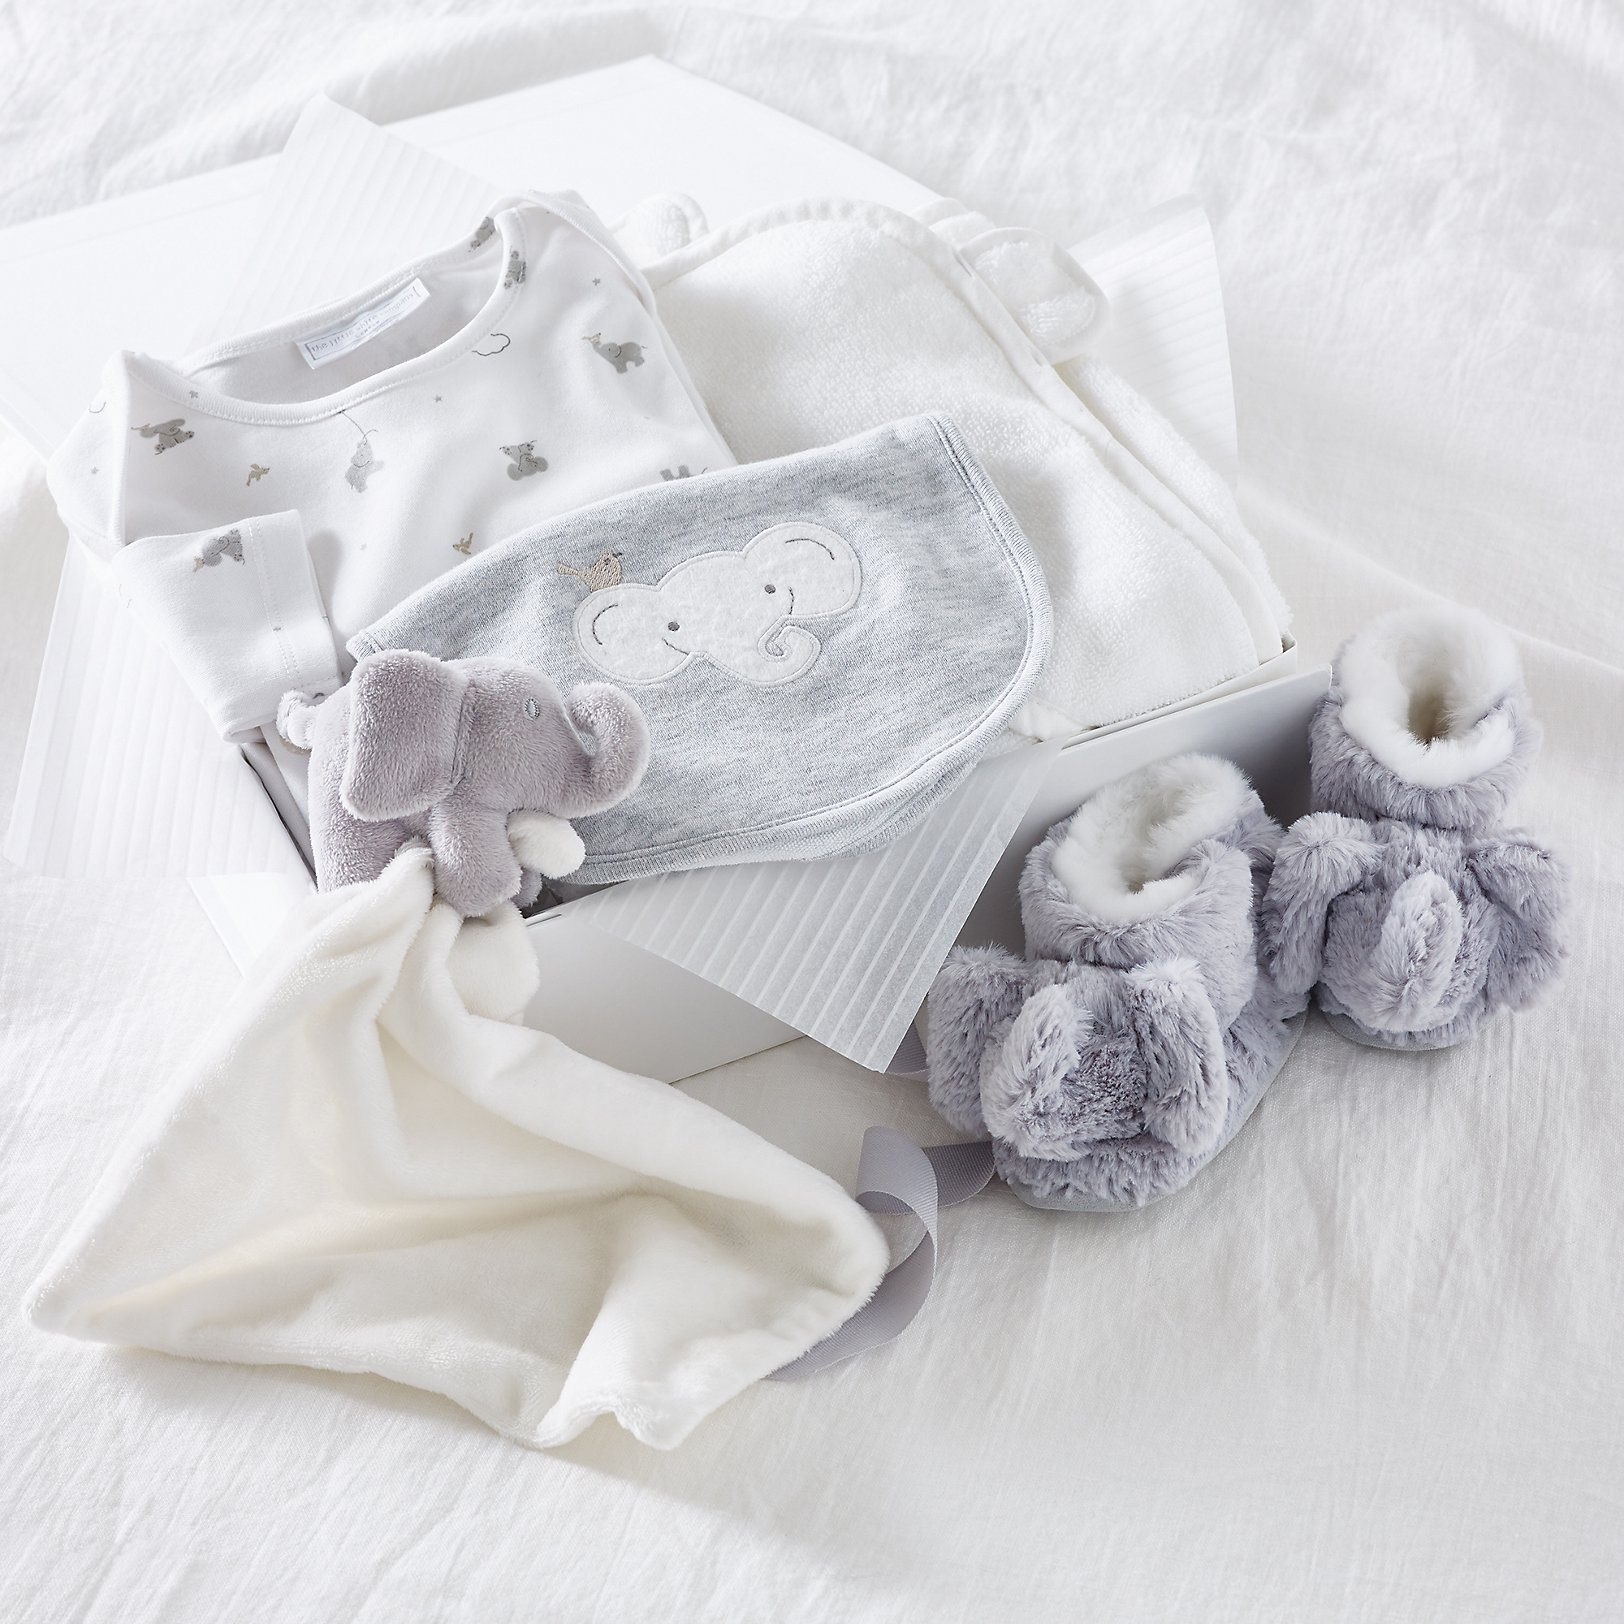 Gifts for baby the white company uk flying kimbo baby gift set negle Gallery